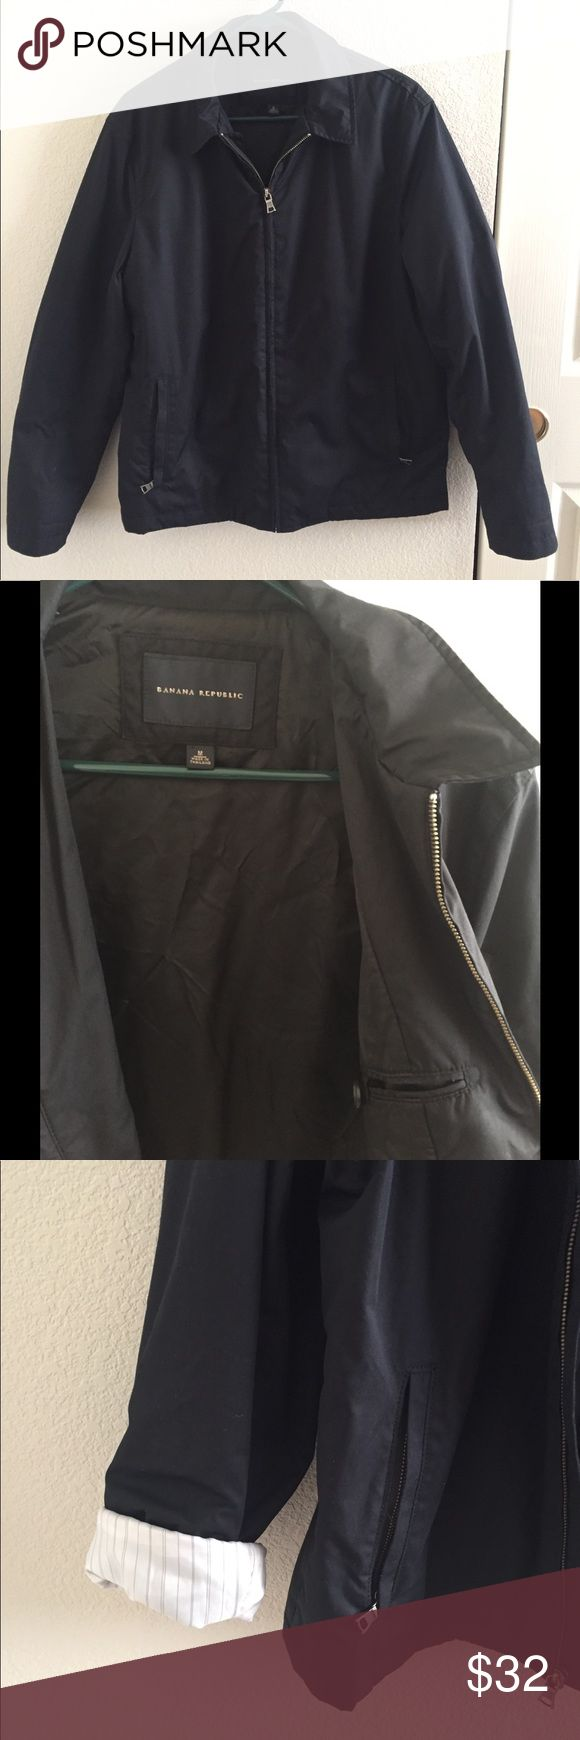 BANANA REPUBLIC Women's Zip Up Jacket Women's black zip up jacket with collar. Zippered front pockets plus inner pocket with button closure. Sleeves have a white and light striped lining. Sleeves can be folded for a different look. Banana Republic Jackets & Coats